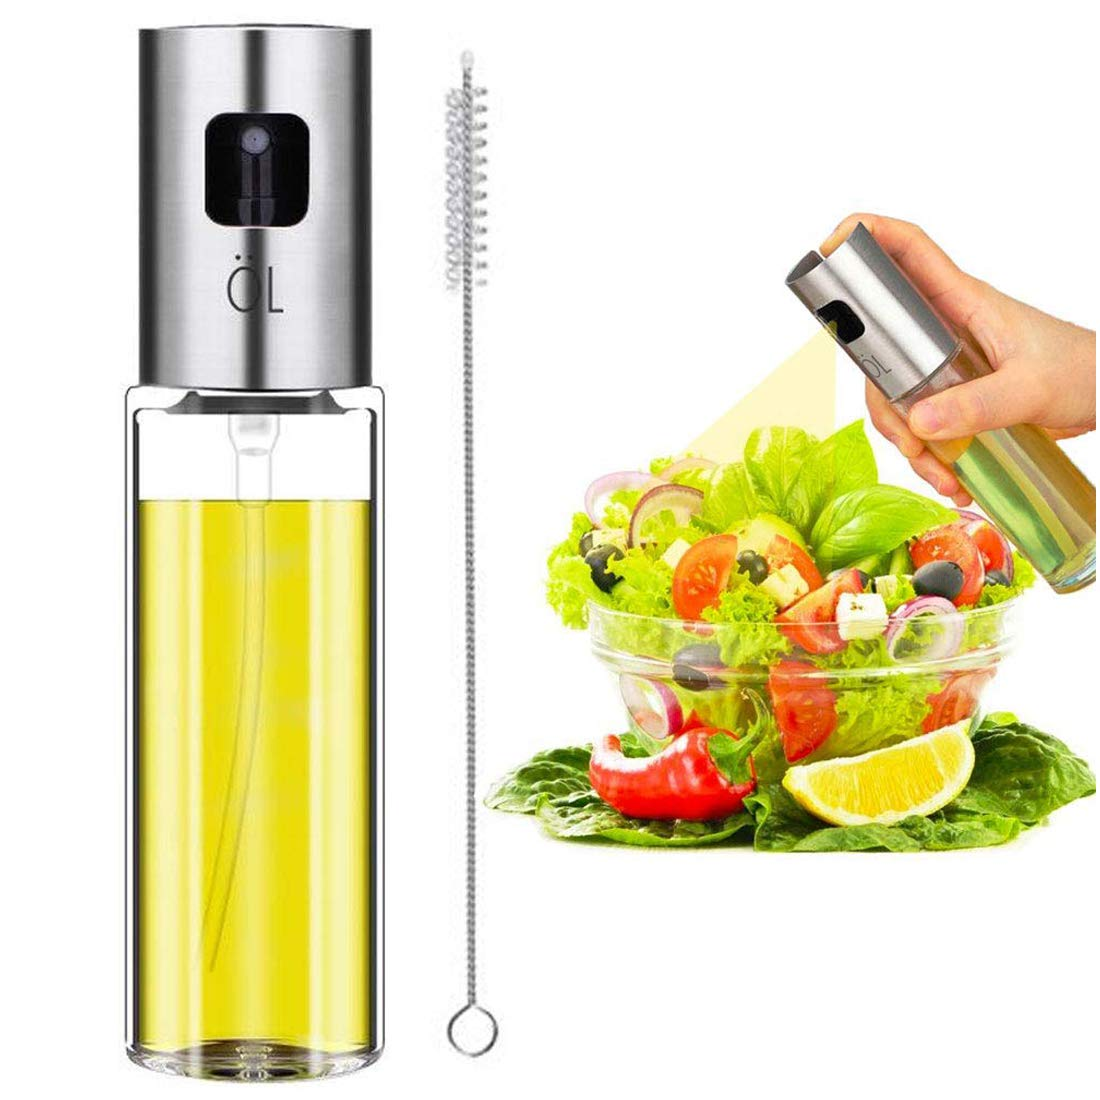 Olive Oil Sprayer, Jufoyo Spray Bottle, Portable Oil Dispenser, Oil Mister for BBQ, Salad, Baking, Roasting, Grilling, Frying, Glass Bottle, FDA Approved, 3.4-Ounce Capacity, Including Free Tube Brush